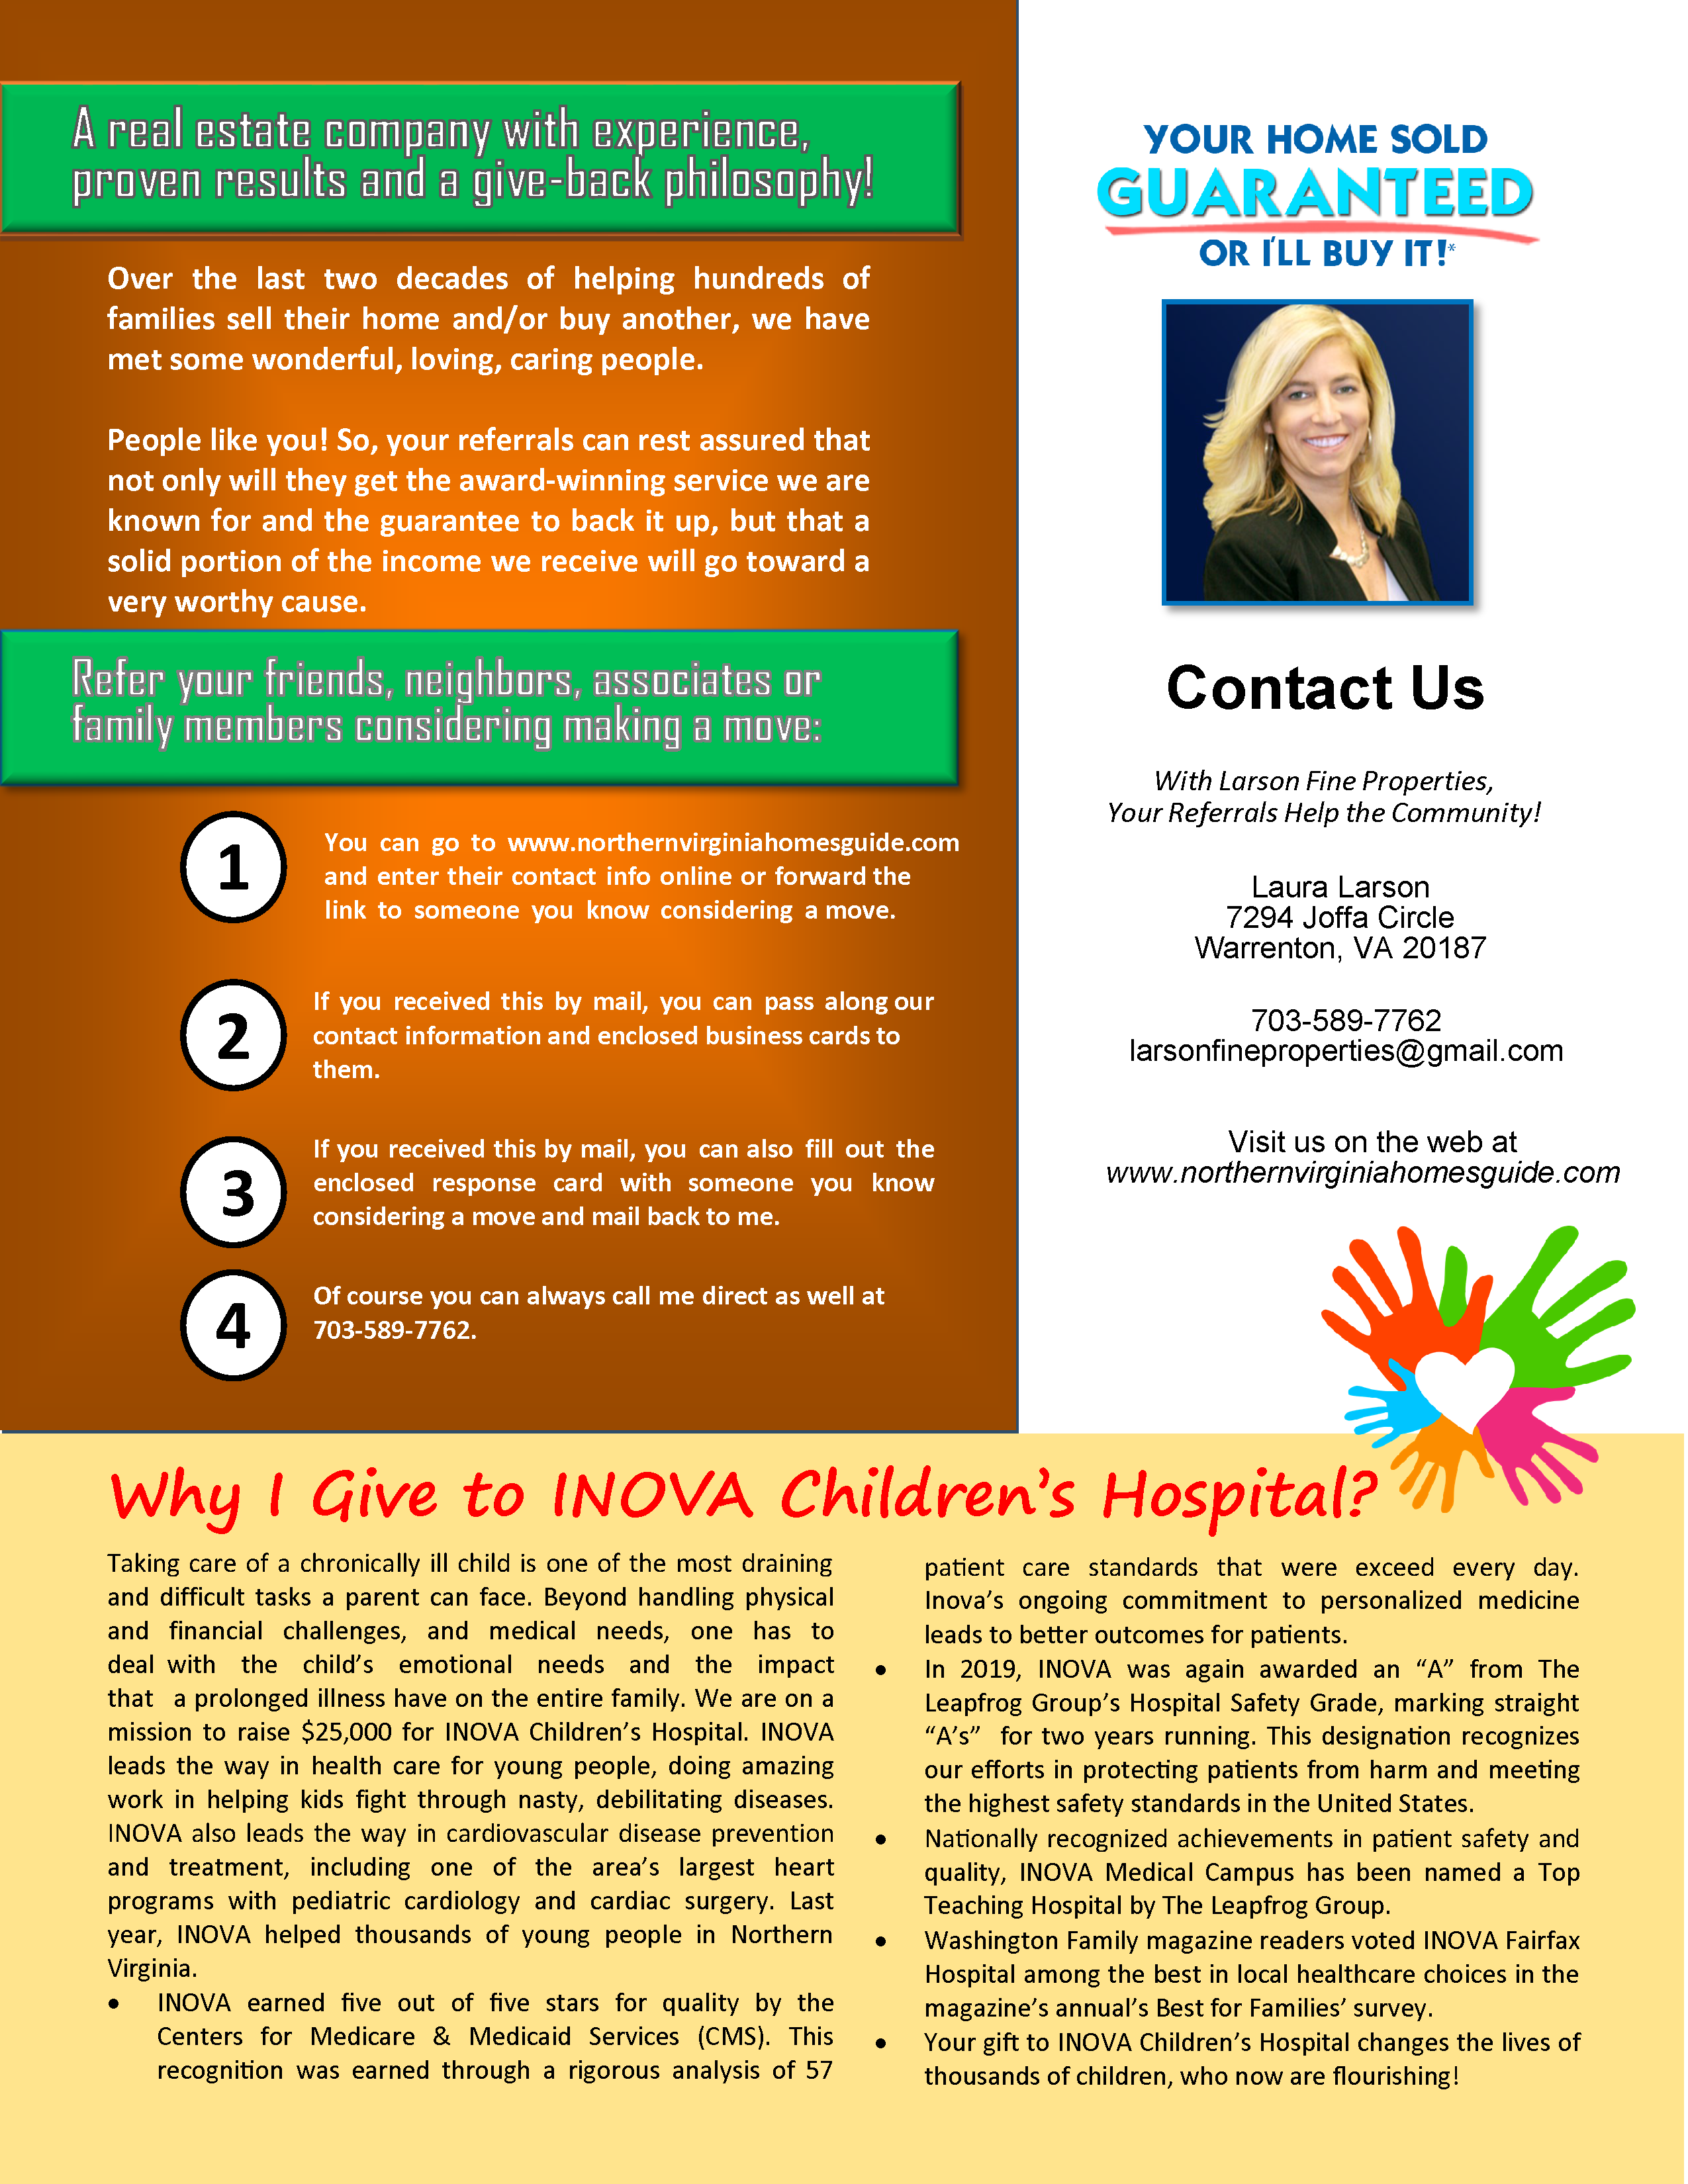 Homeward Bound Newsletter - March (FOR PRINT)_Page_4.png